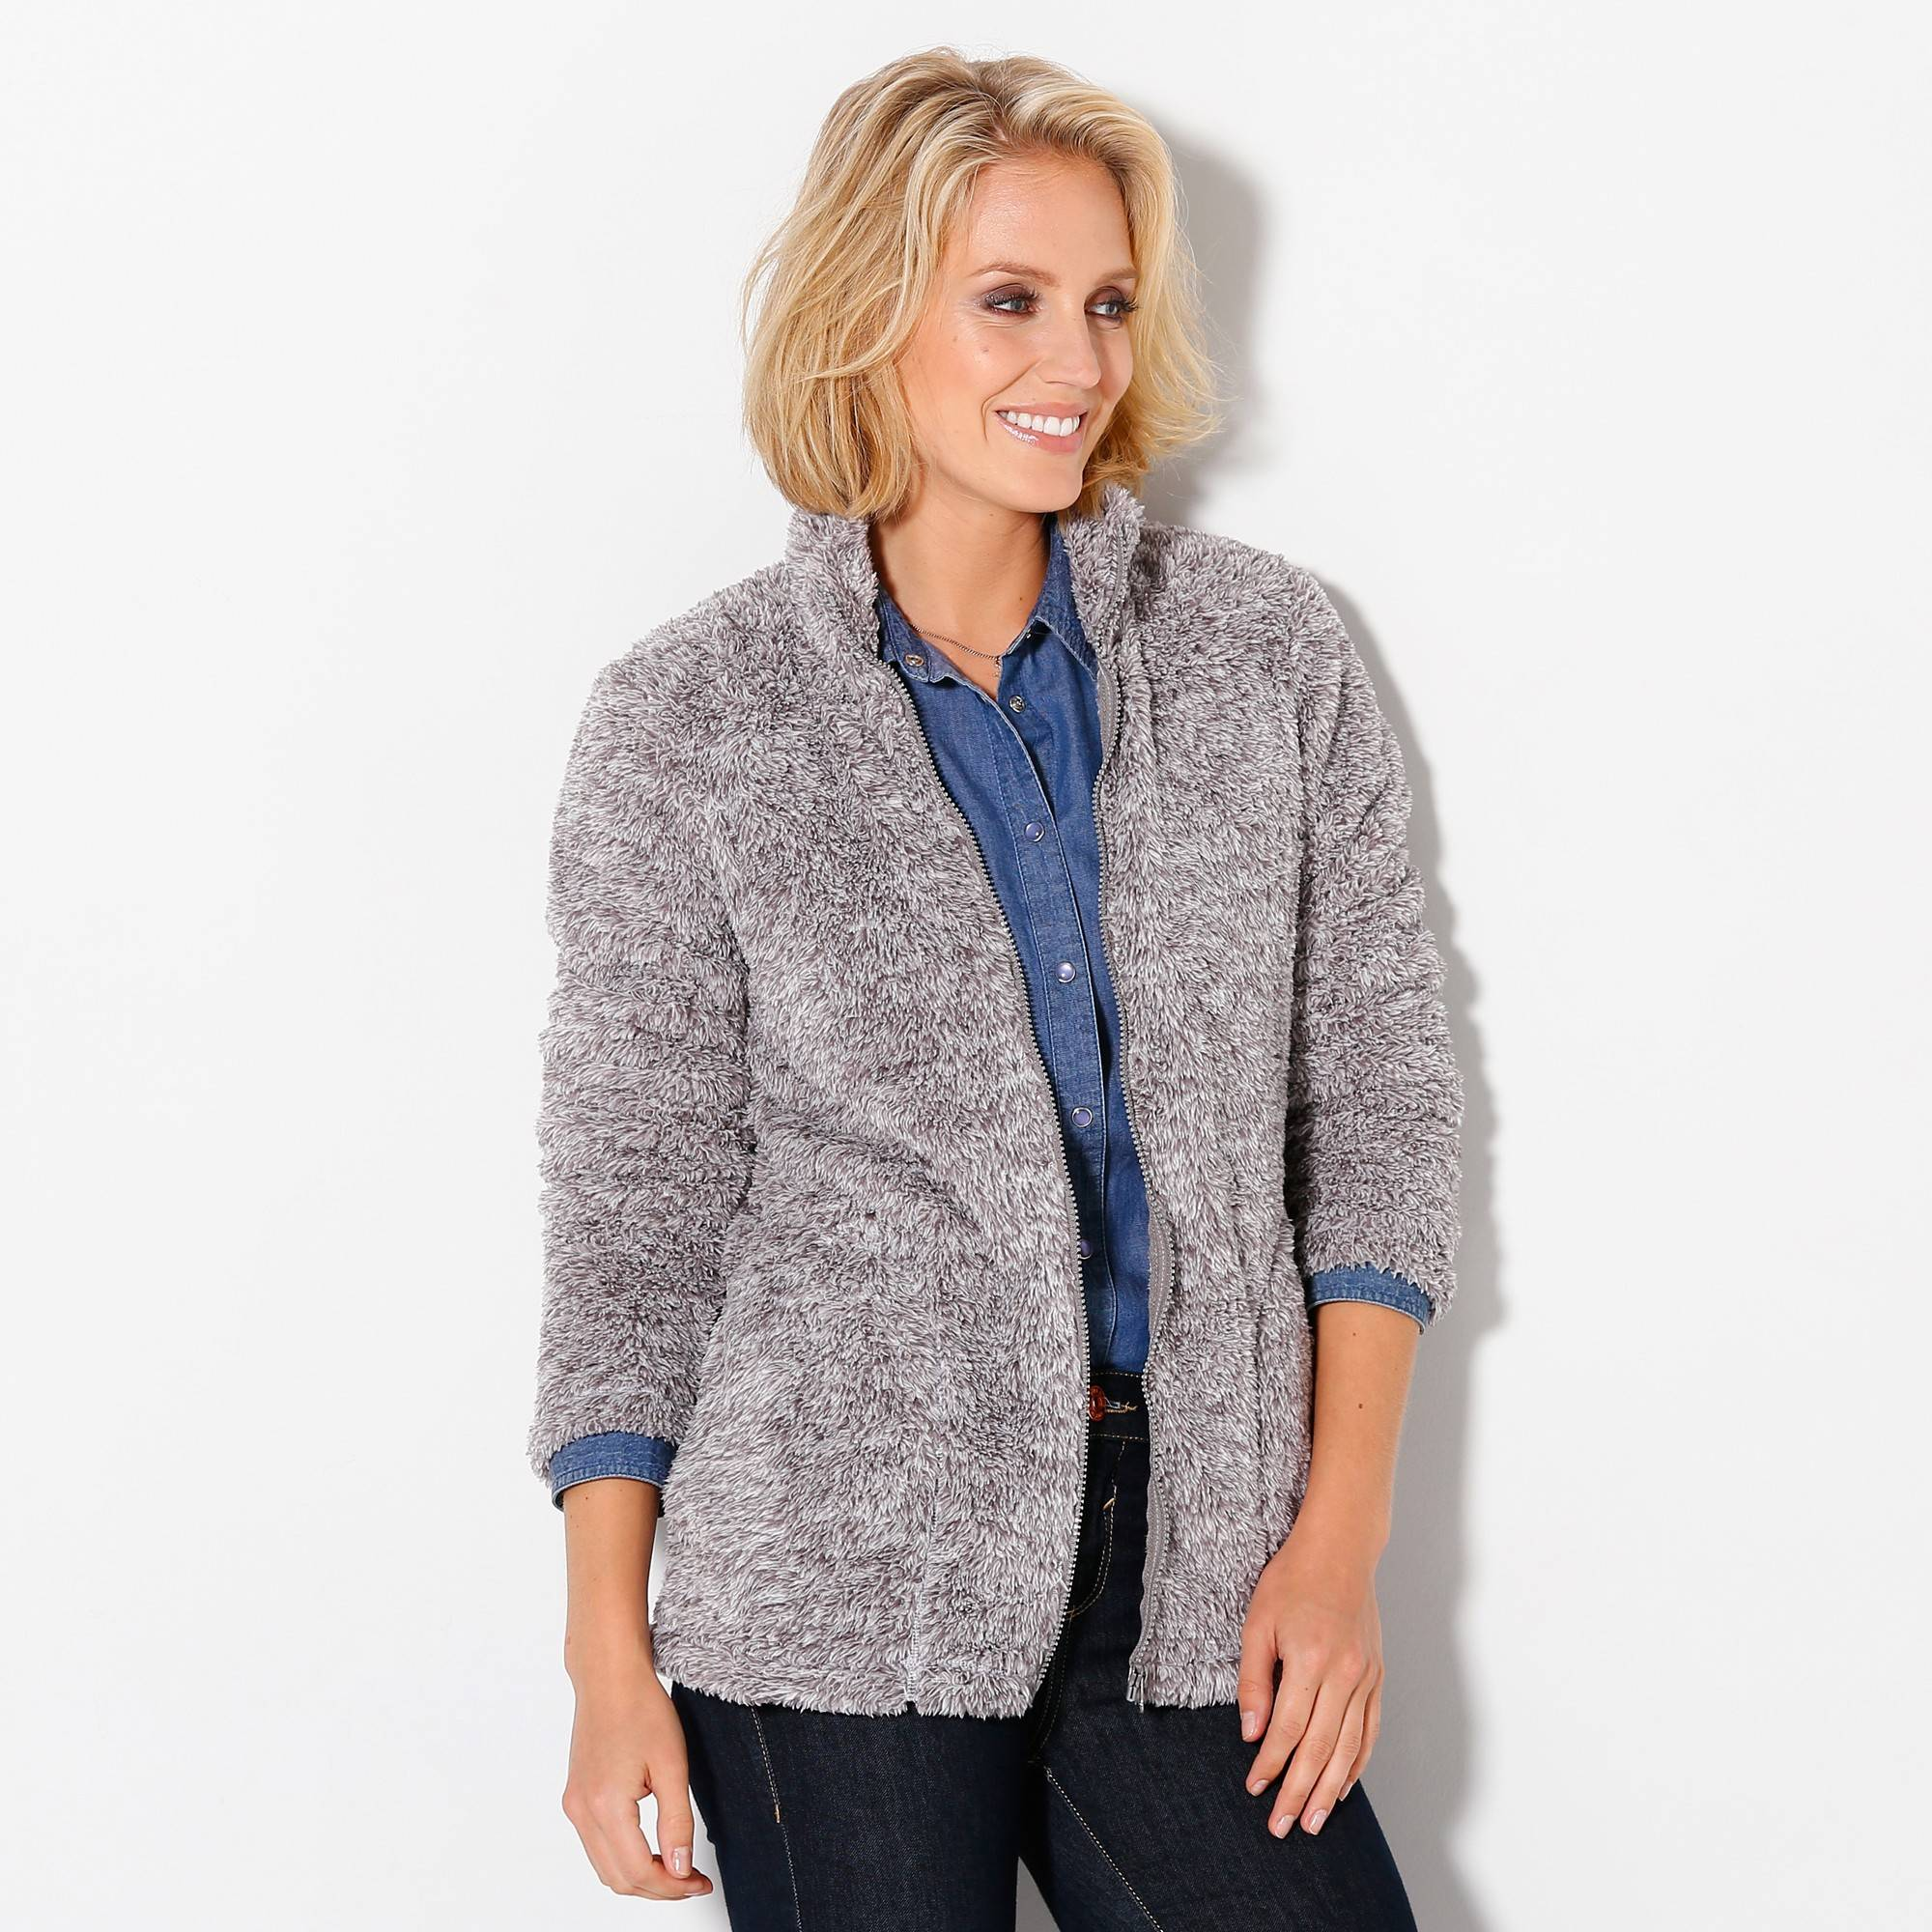 Casual Collection Veste maille peluche - Gris - Taille : 42,44 - Blancheporte